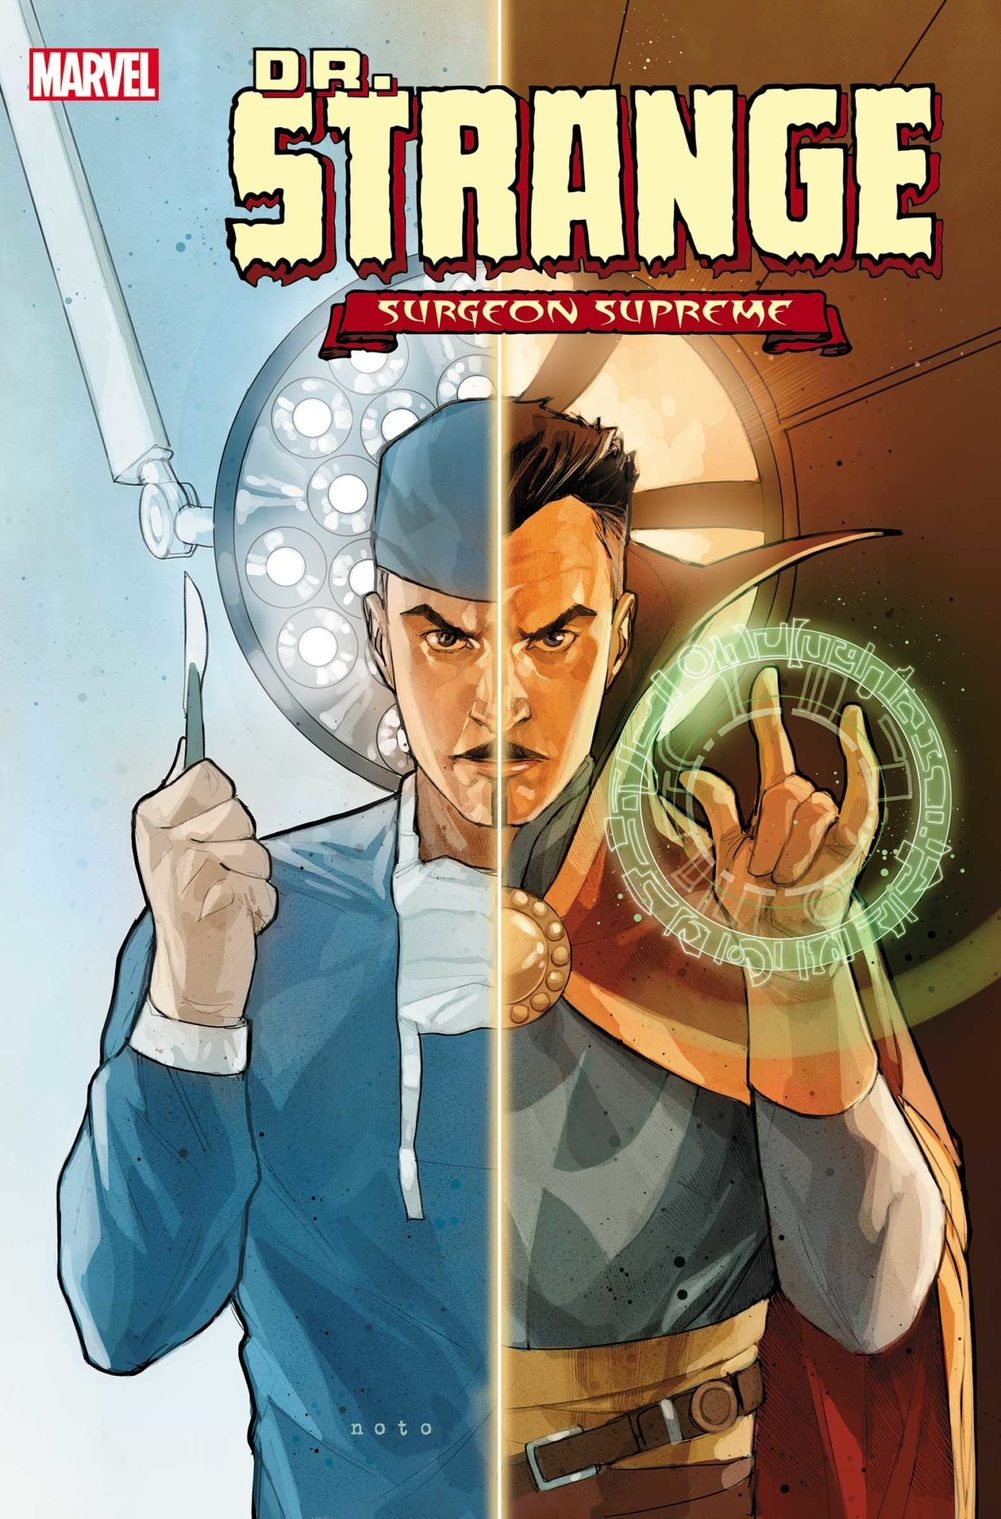 Doctor Strange Surgeon Supreme #1 Cover A Regular Phil Noto Cover